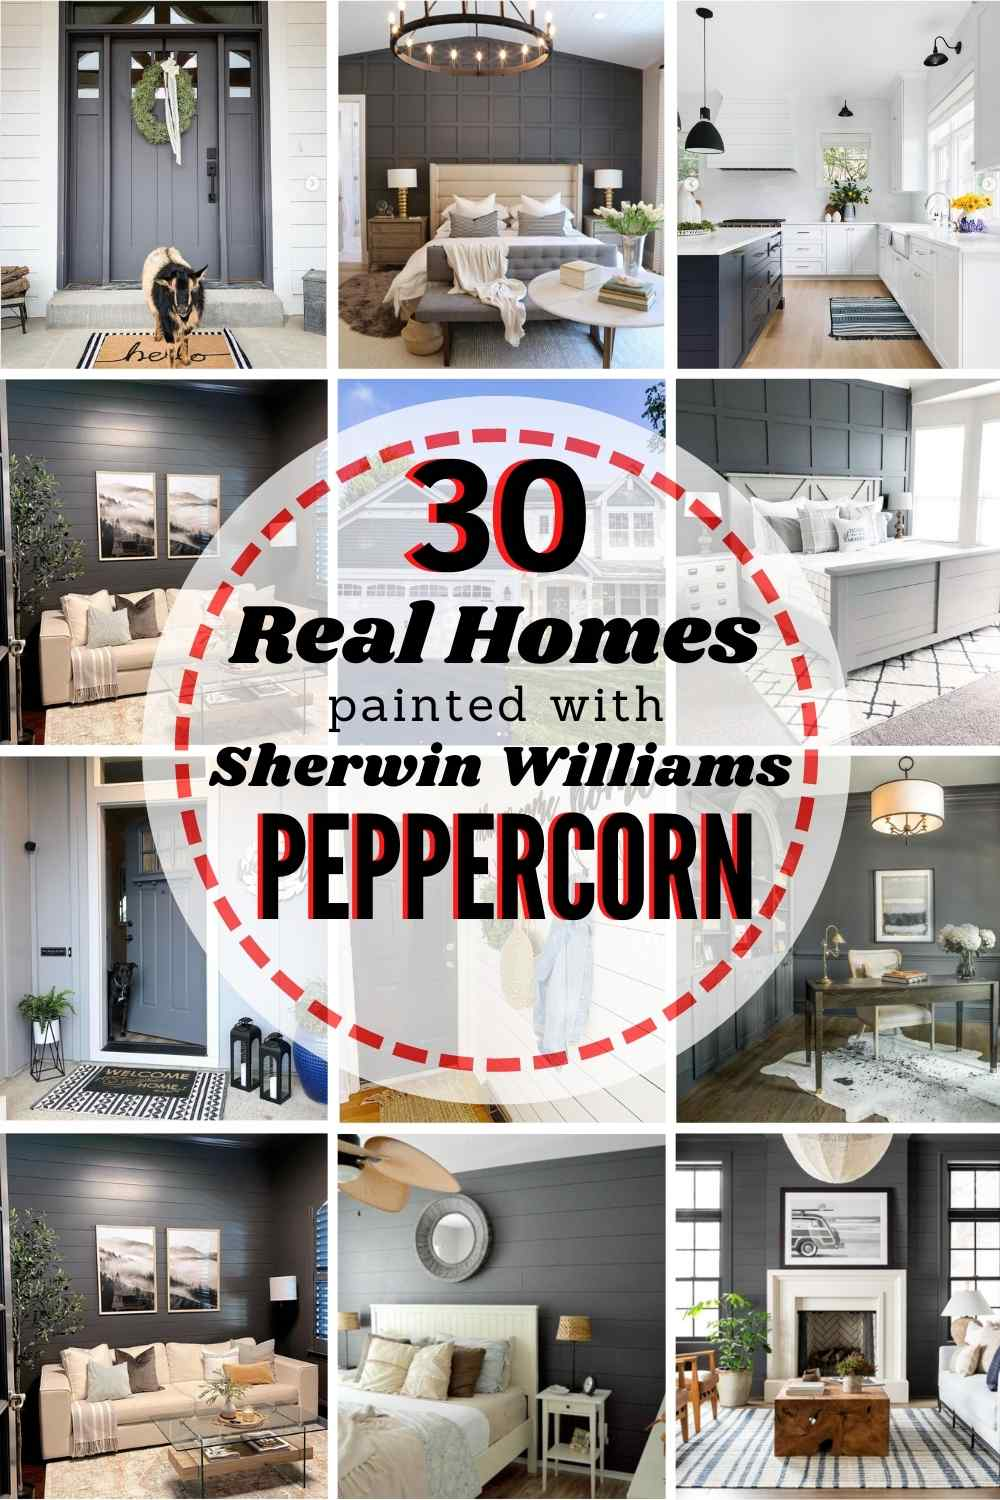 grid image of homes painted in Sherwin Williams Peppercorn. Text: 30 Real Homes painted with Sherwin Williams Peppercorn